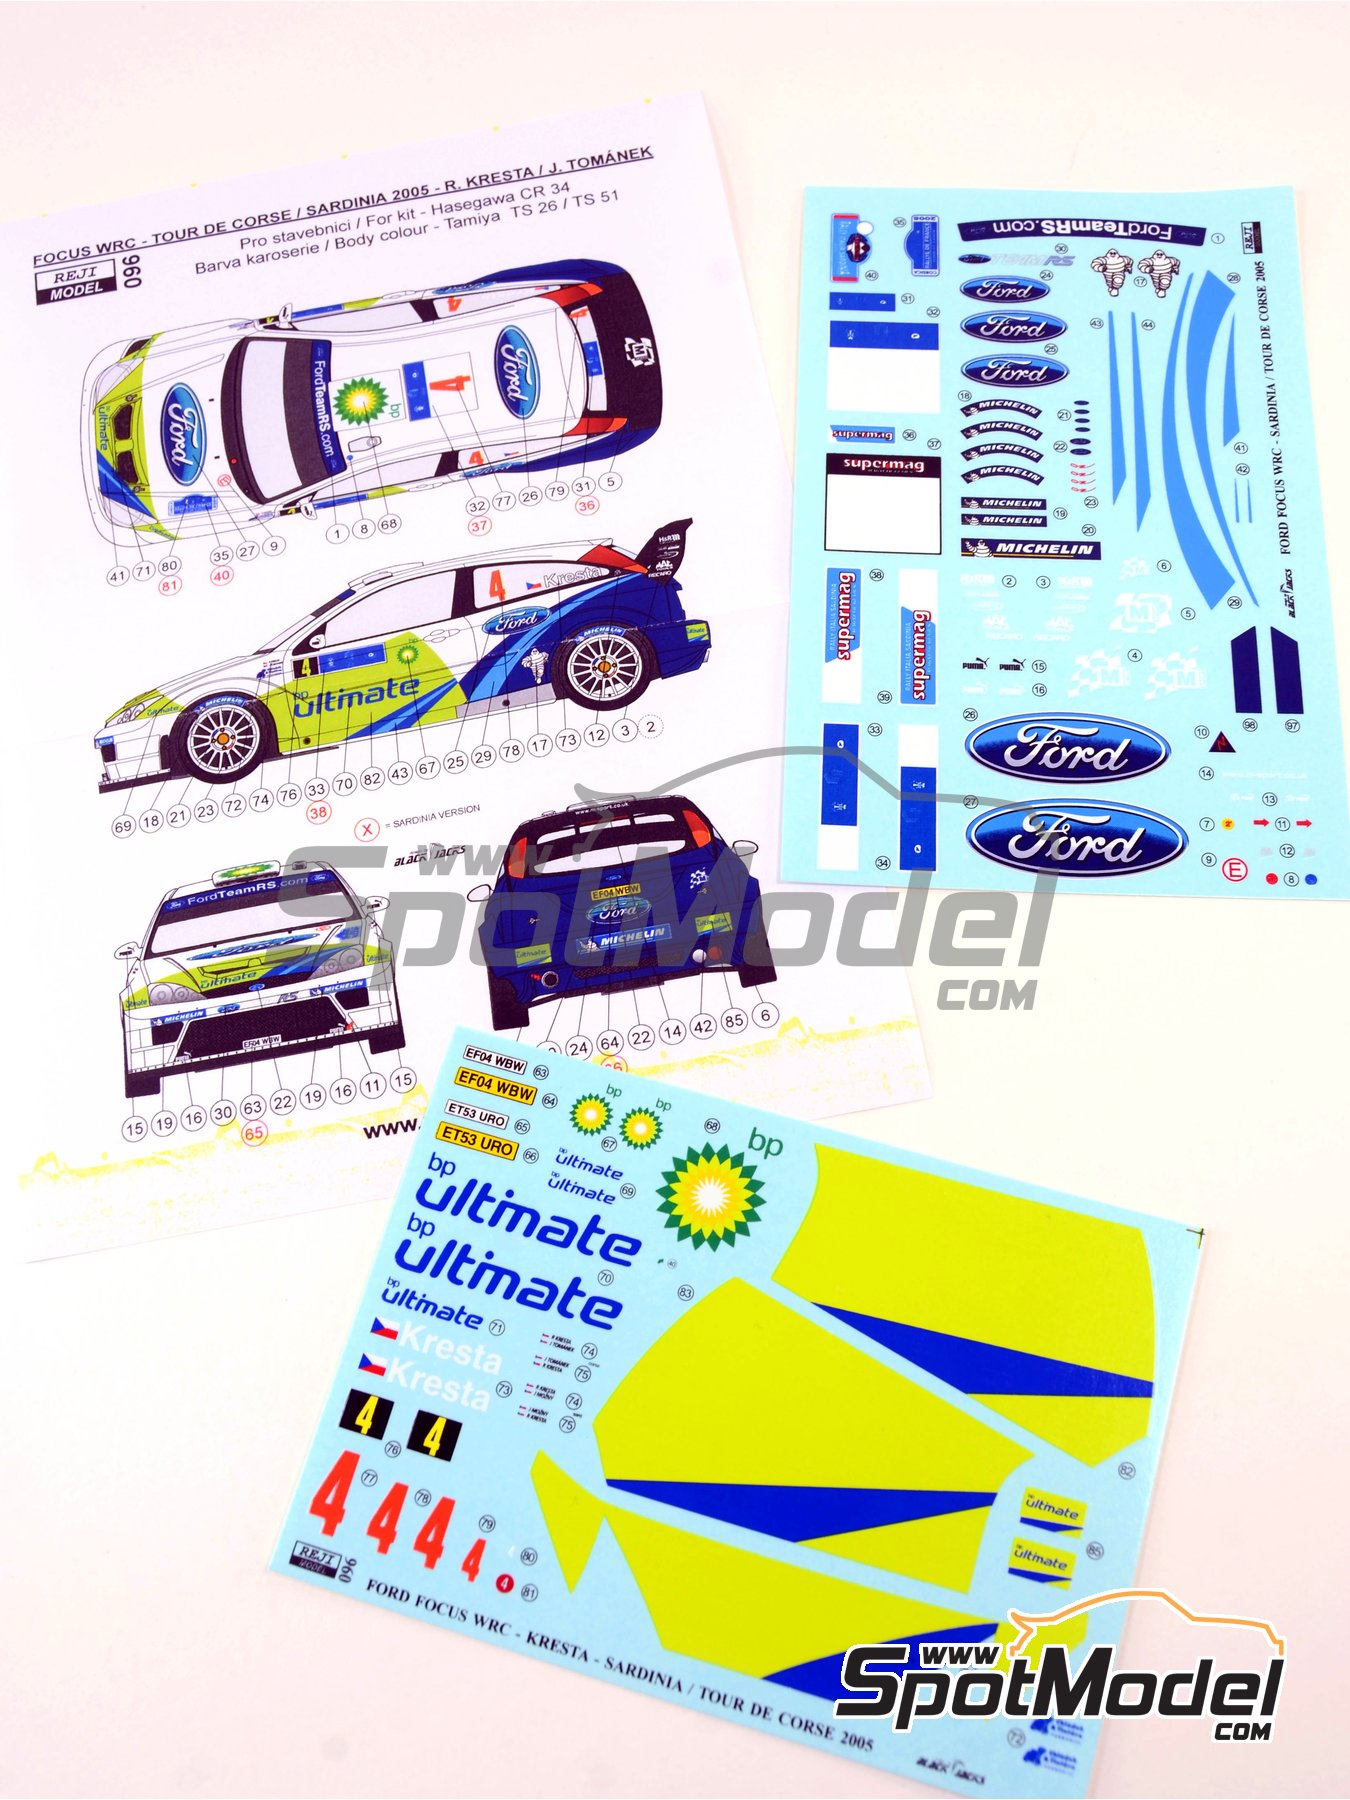 Ford Focus WRC BP - Tour de Corse 2005 | Marking / livery in 1/24 scale manufactured by Reji Model (ref.REJI-096) image